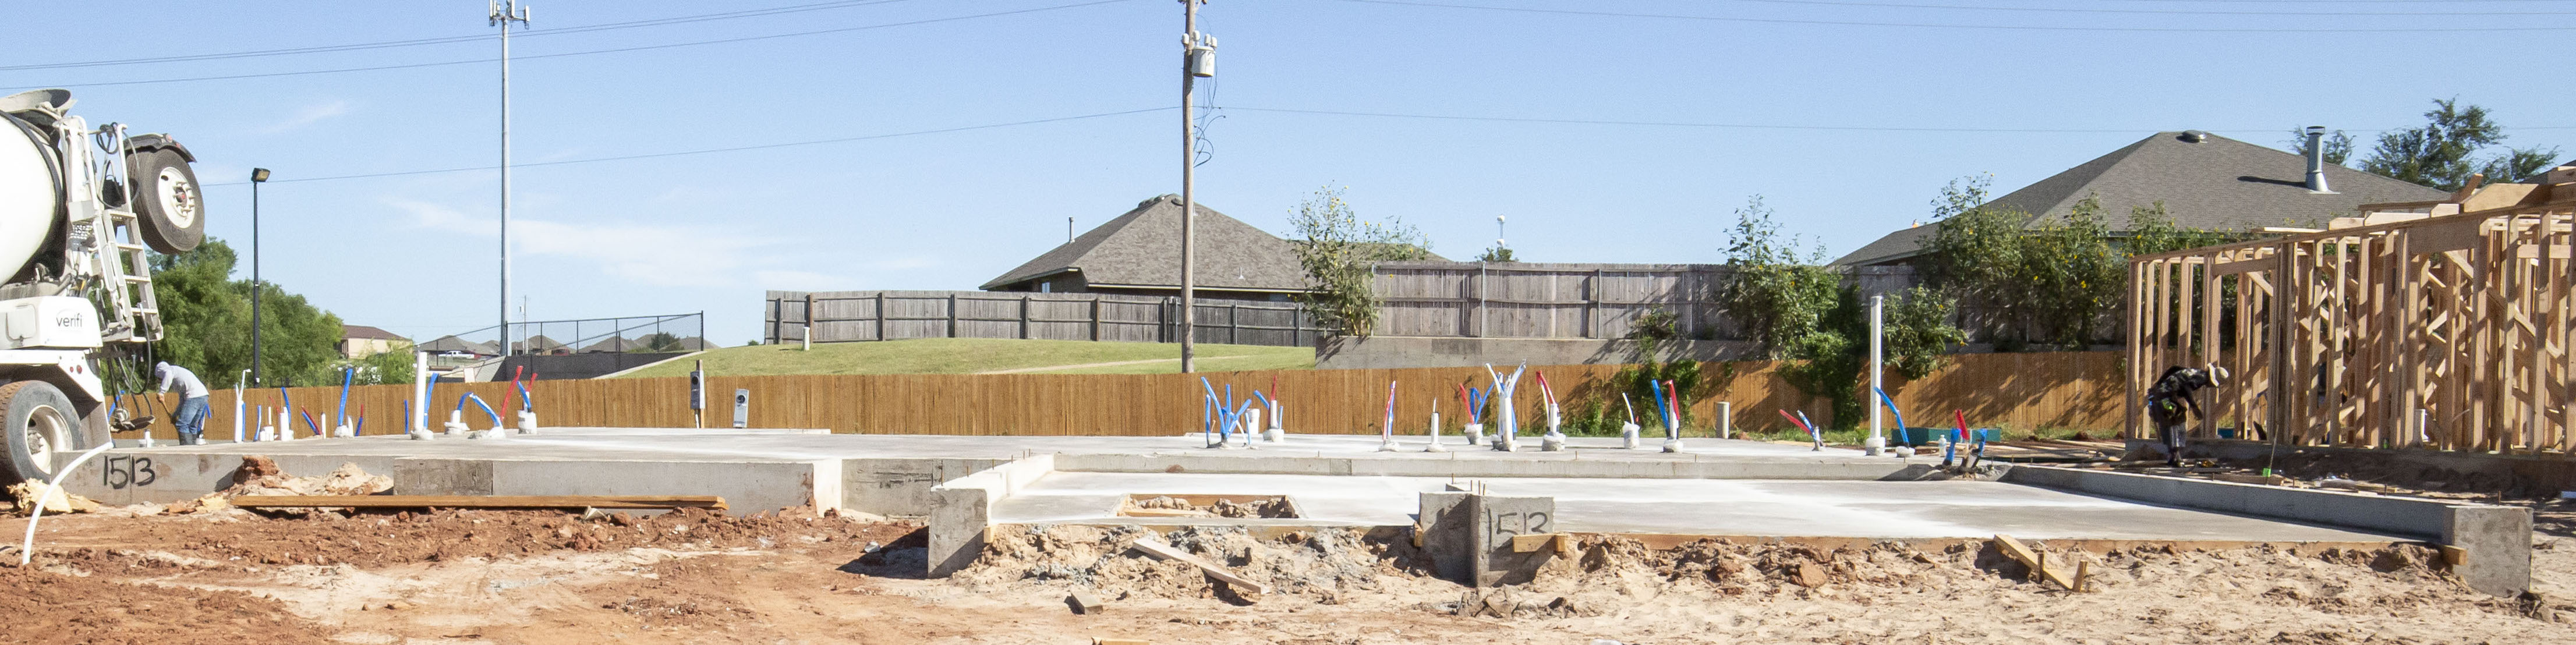 A foundation on a plot of land with a concrete truck on the left and the frame of a home on the right.